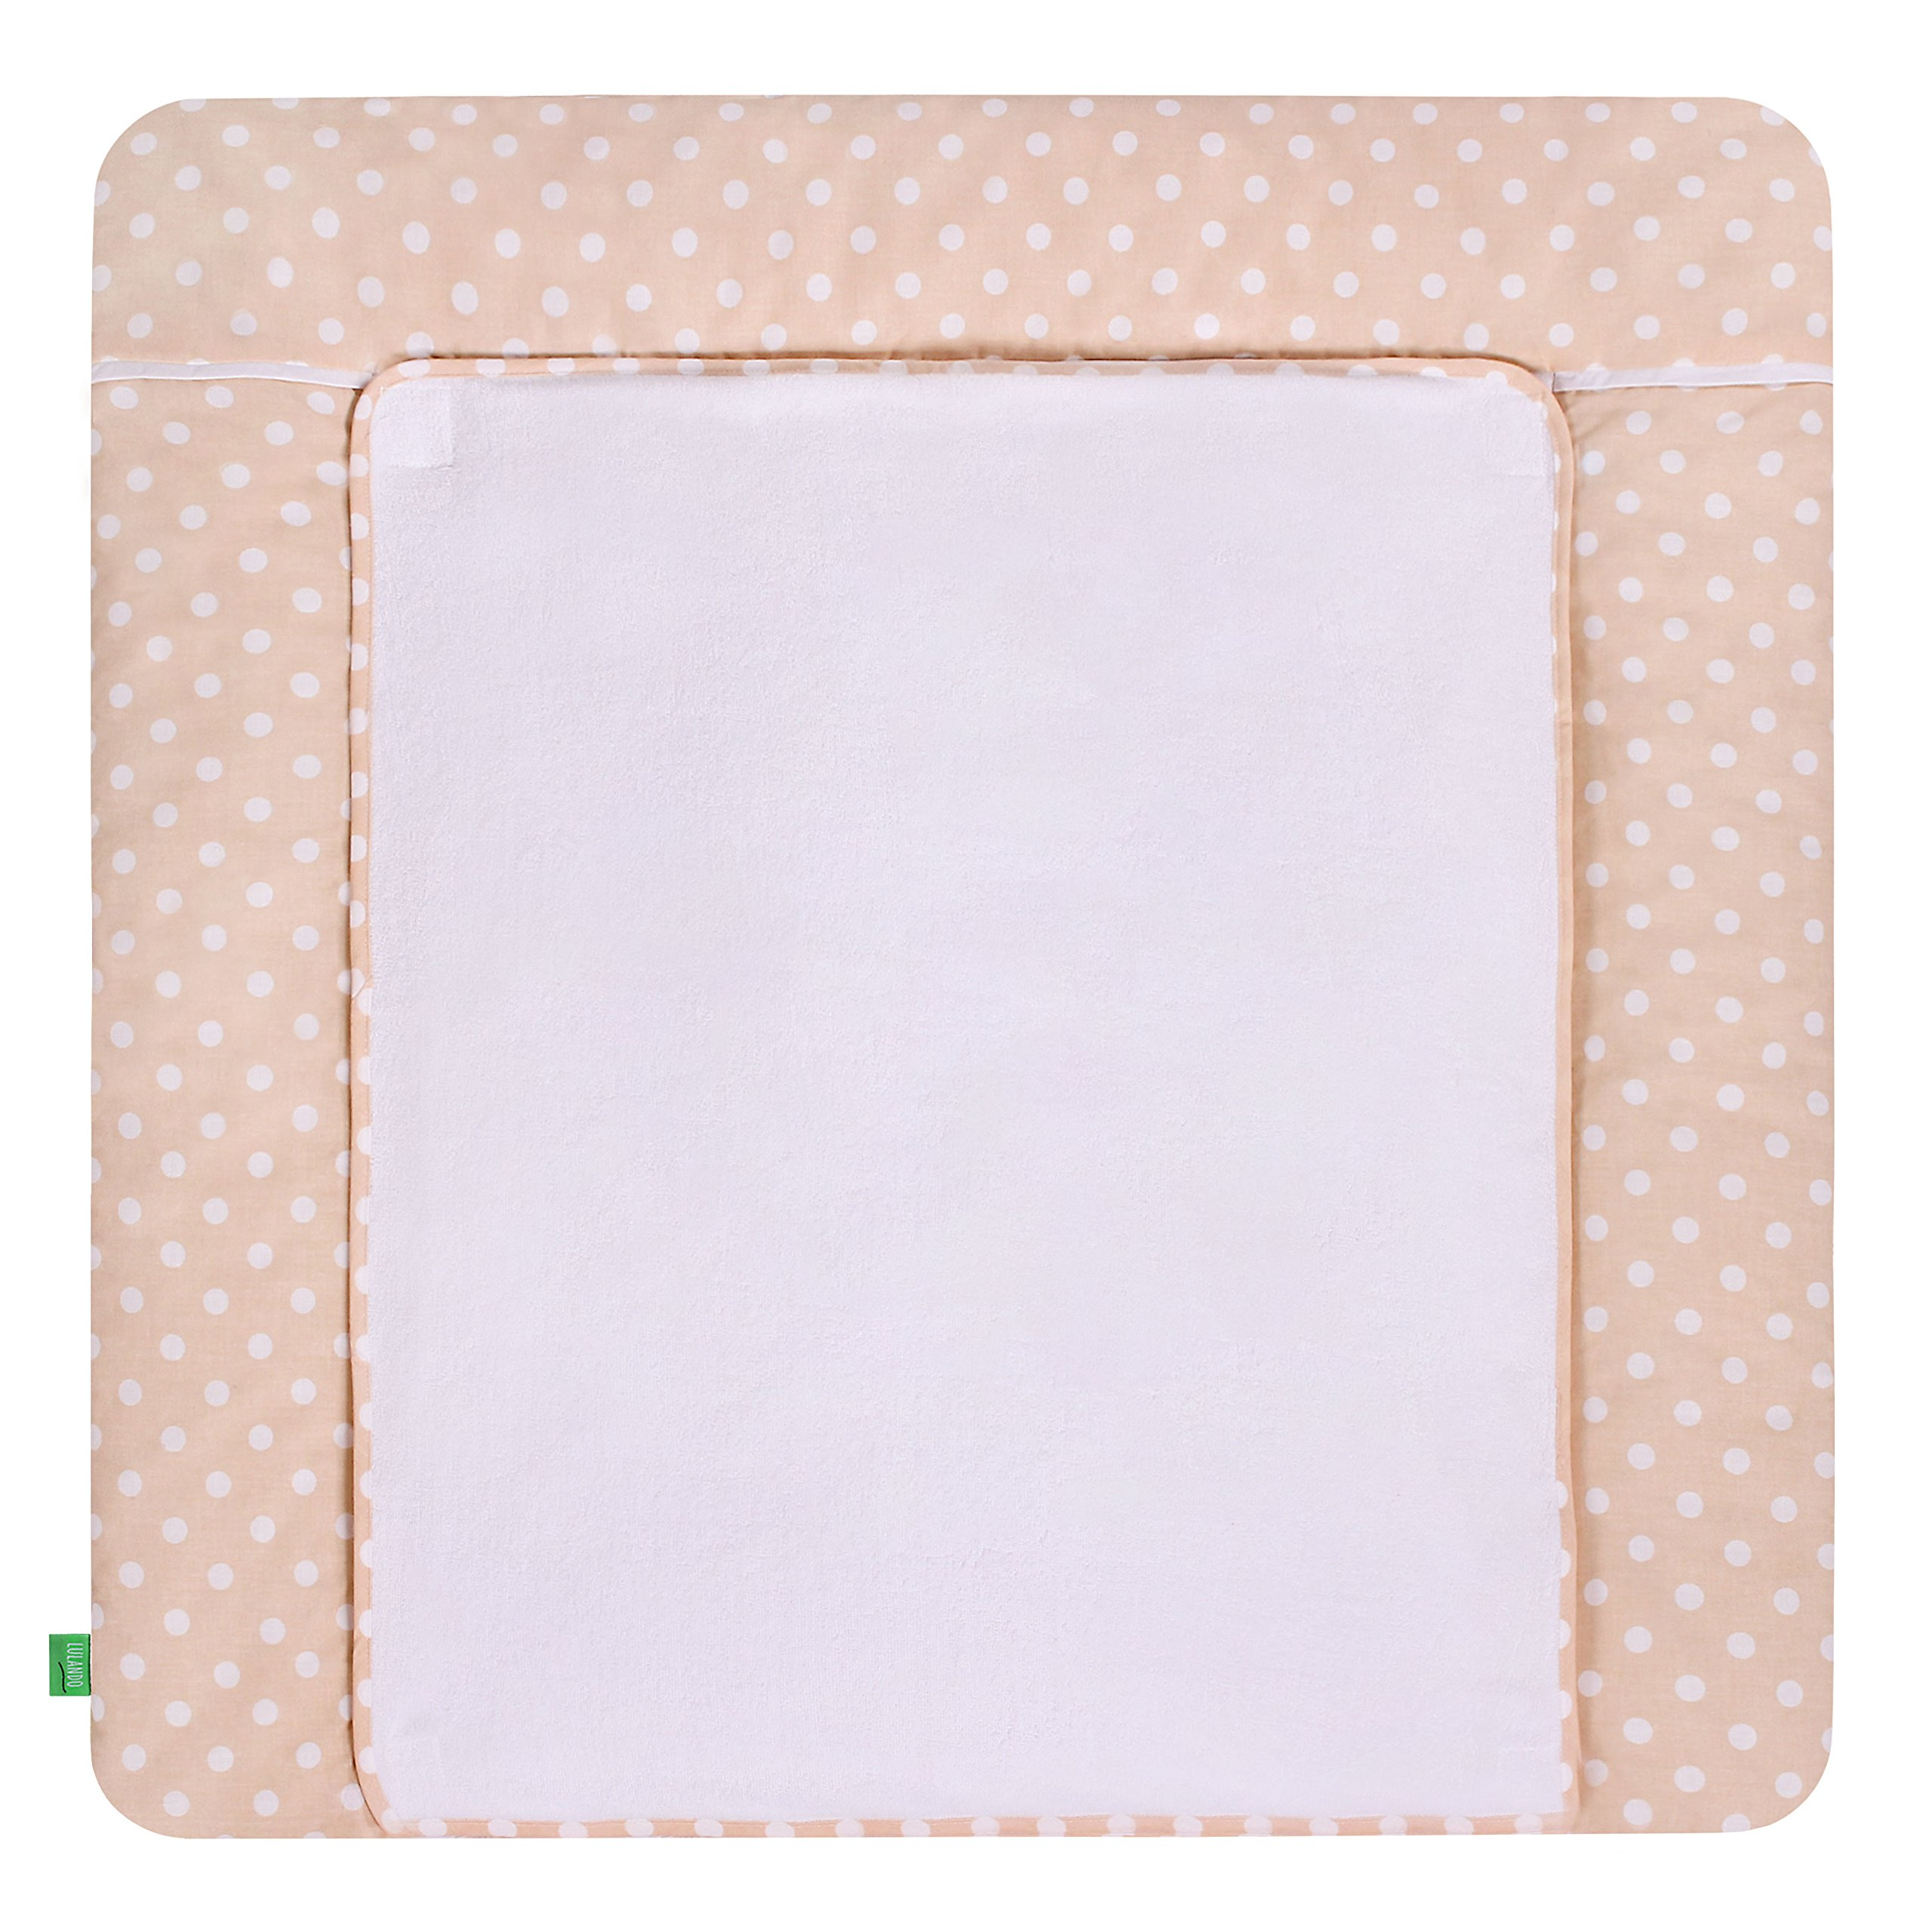 LULANDO Changing Mat with 2 Removable Waterproof Covers 29,92 x 29,92 in 100% Cotton Frotte (Beige Dots)